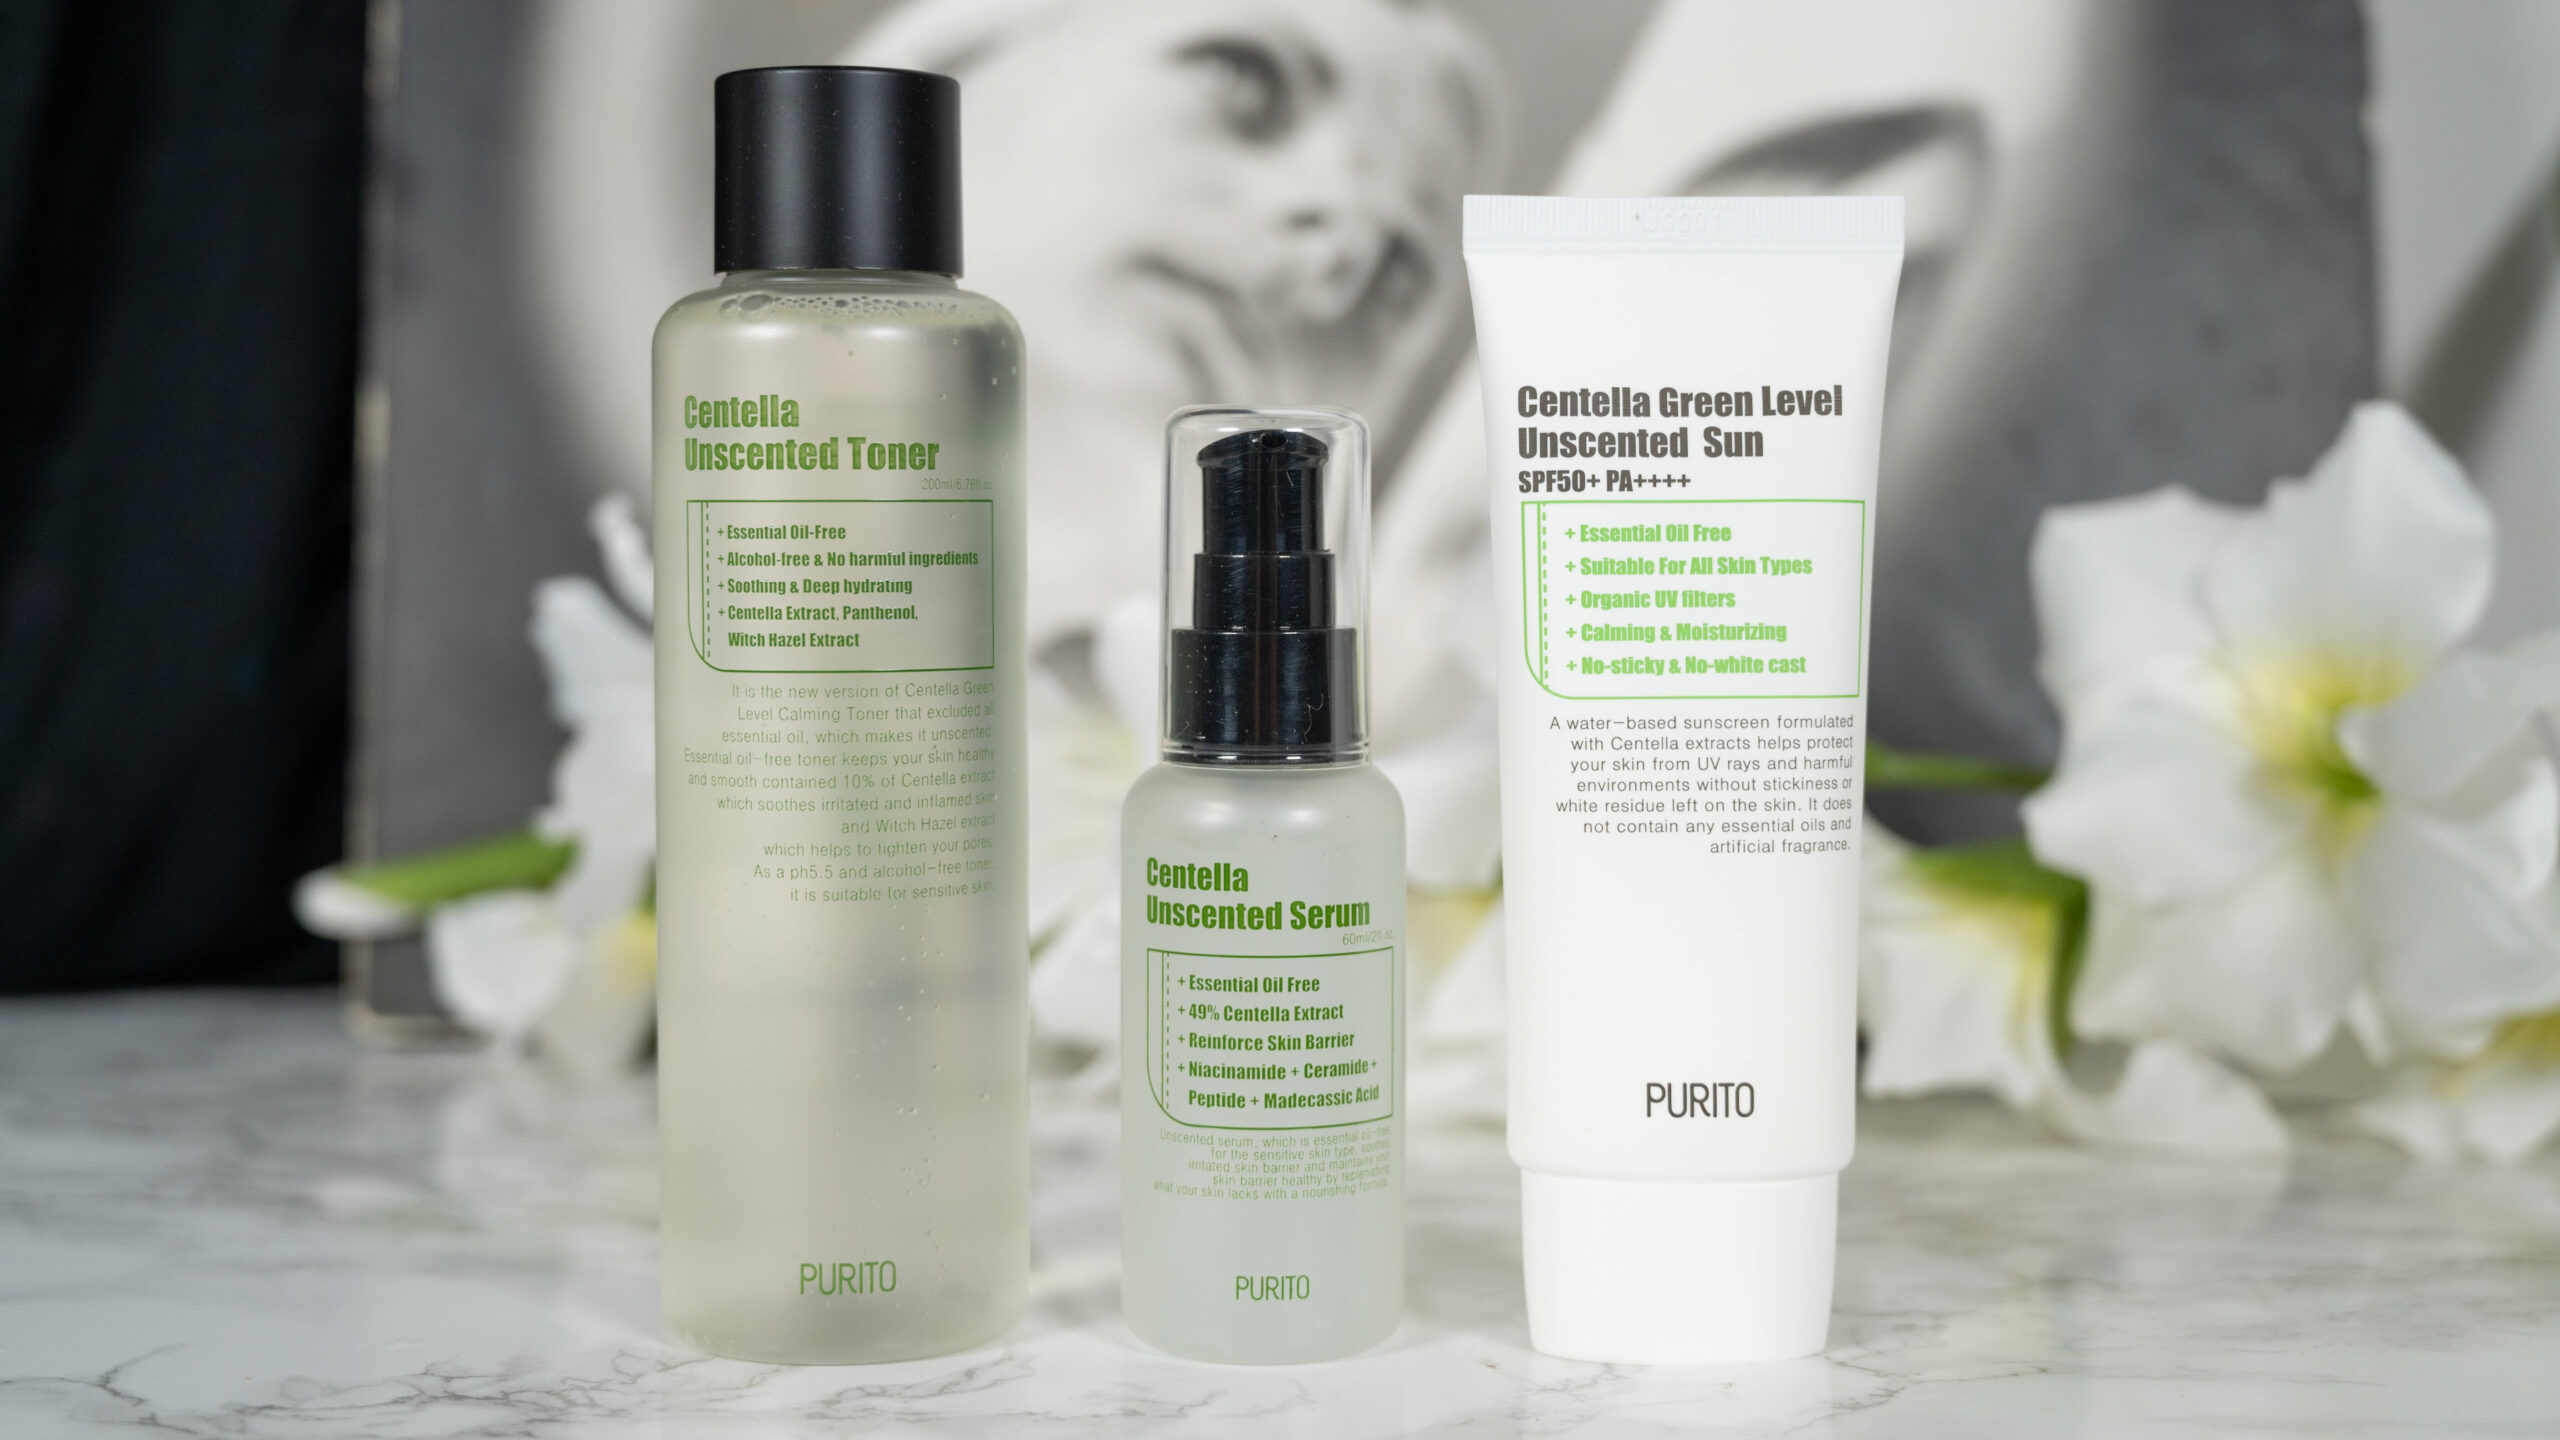 Purito Centella Unscented Line